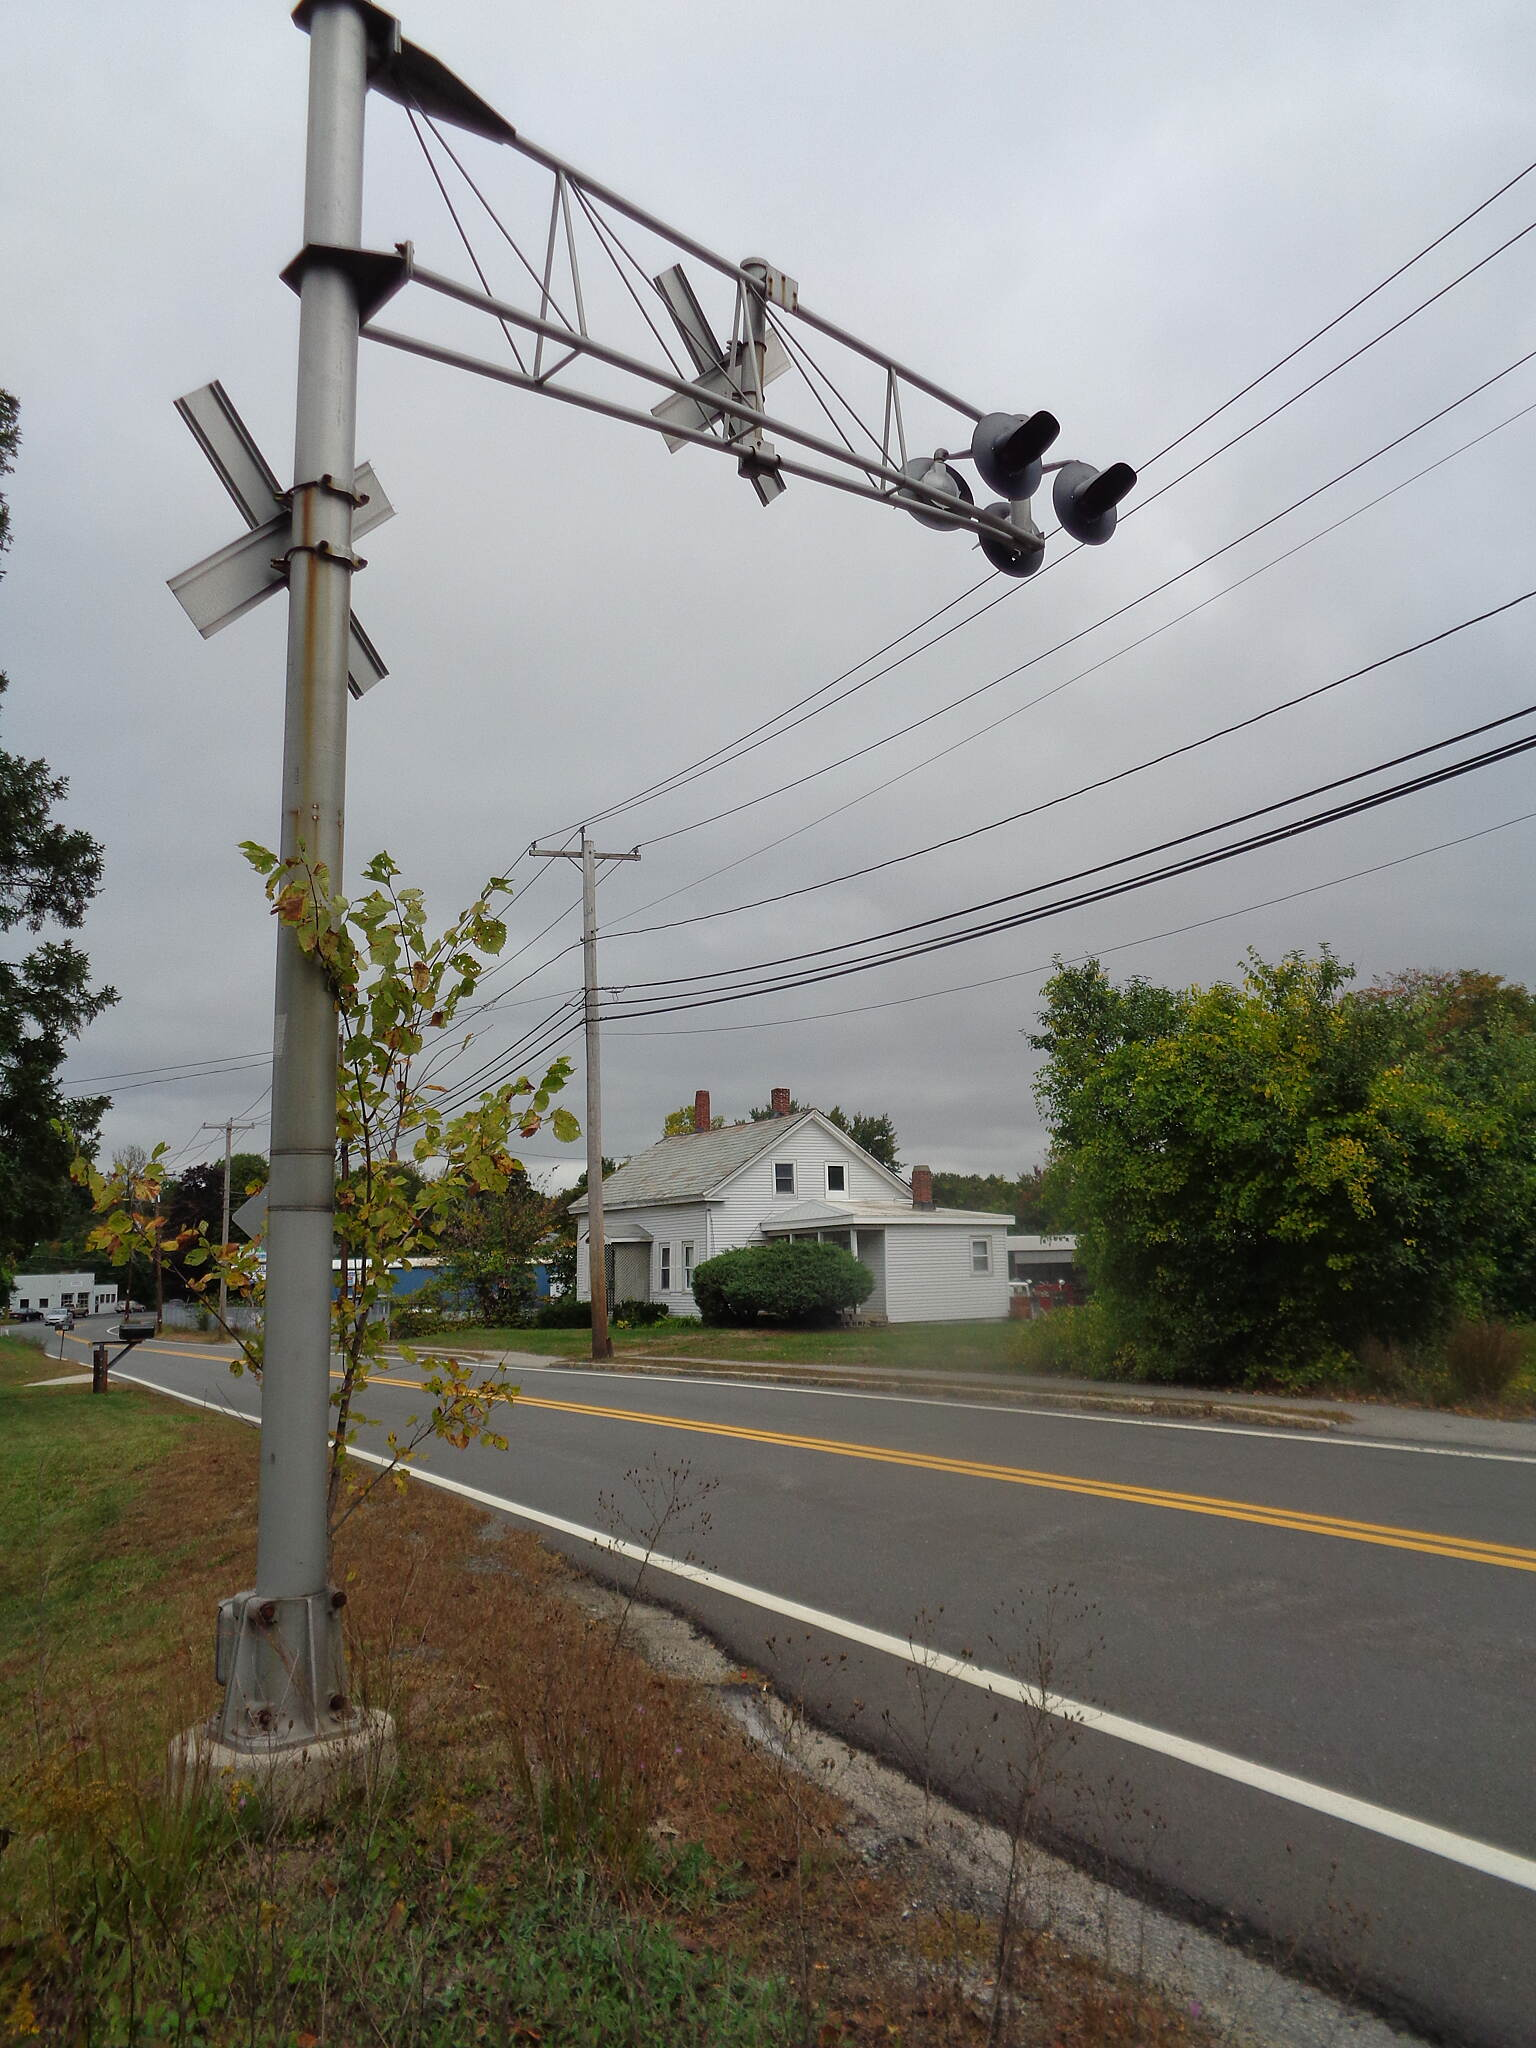 Grand Trunk Trail Crossing signals at Rte 12 These crossing signals remain at Route 12 Dudley, viewed looking eastward on 9/28/16. It is proposed to relocate to the small railroad museum in neighboring Webster.